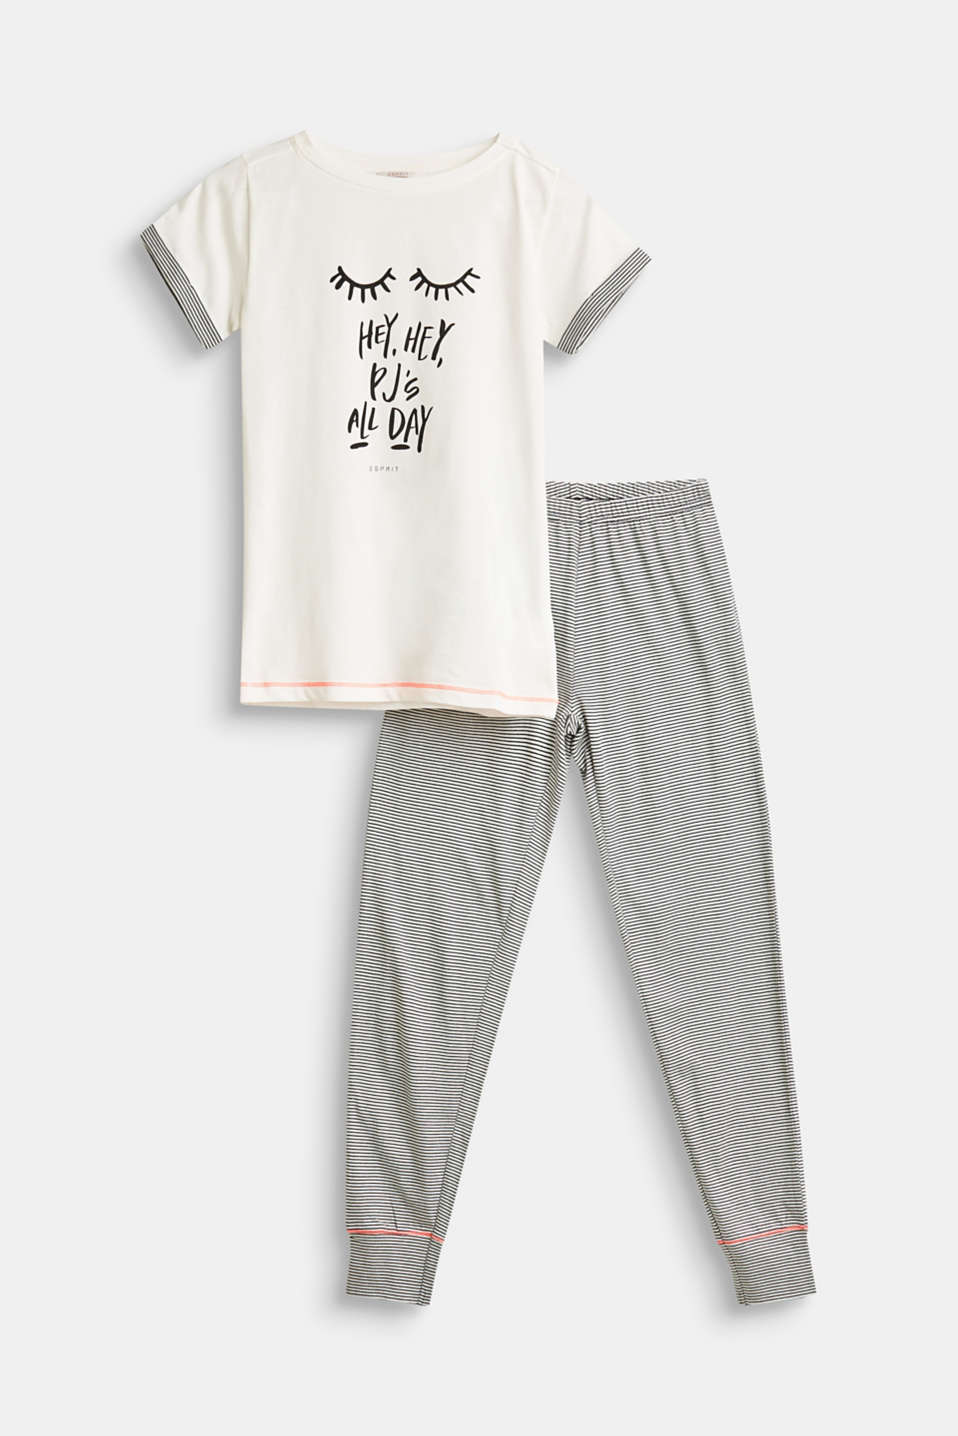 Esprit - Statement pyjamas, 100% cotton